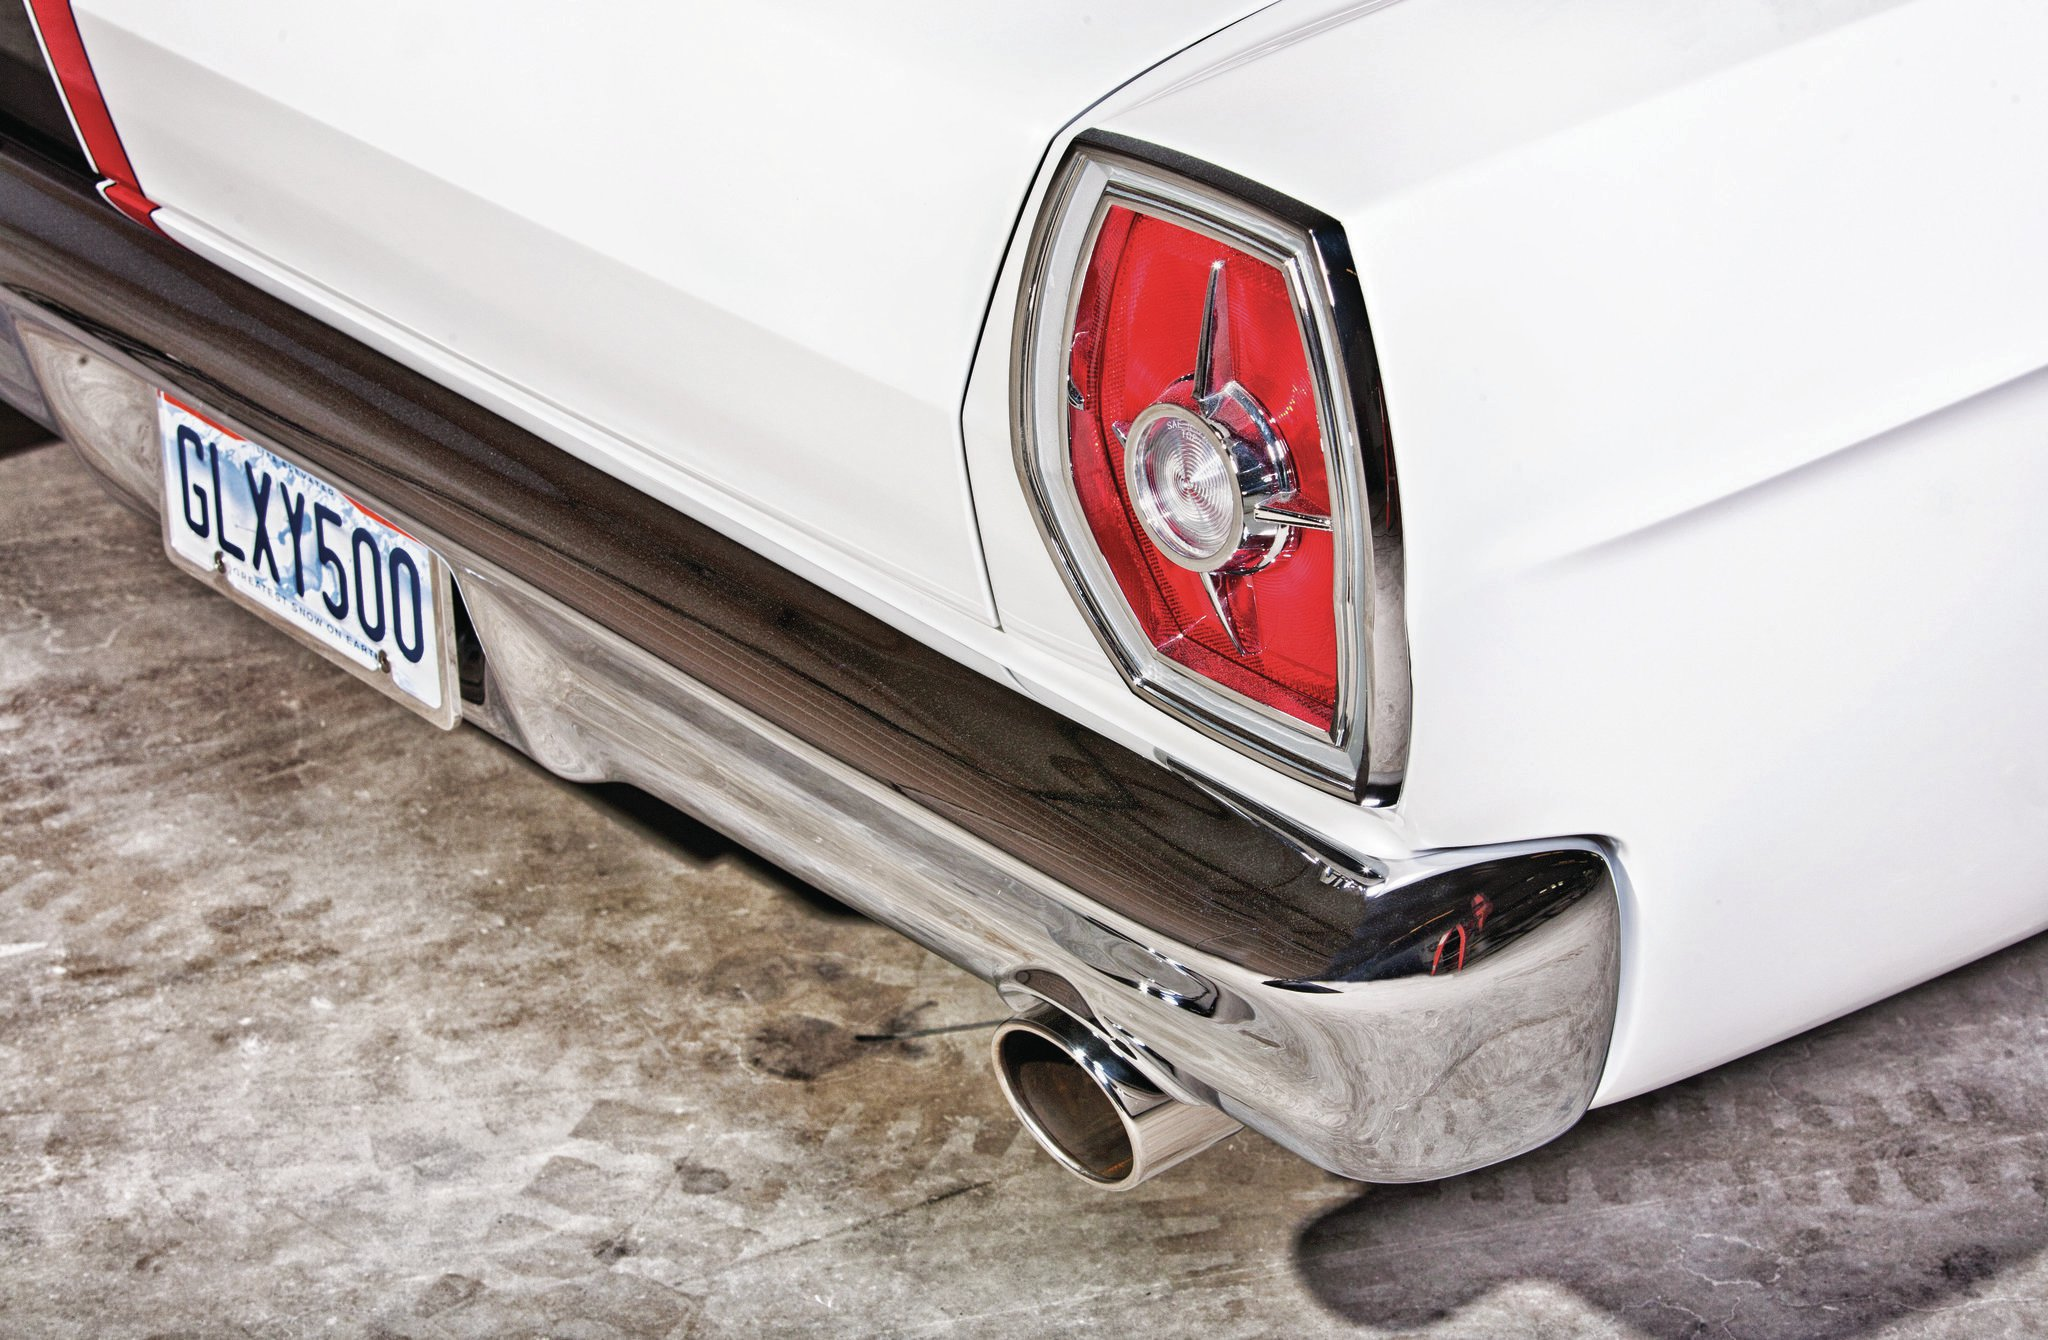 Like the front, the rear bumper and taillights fitment were tightened up to match the smooth look of the sheetmetal.